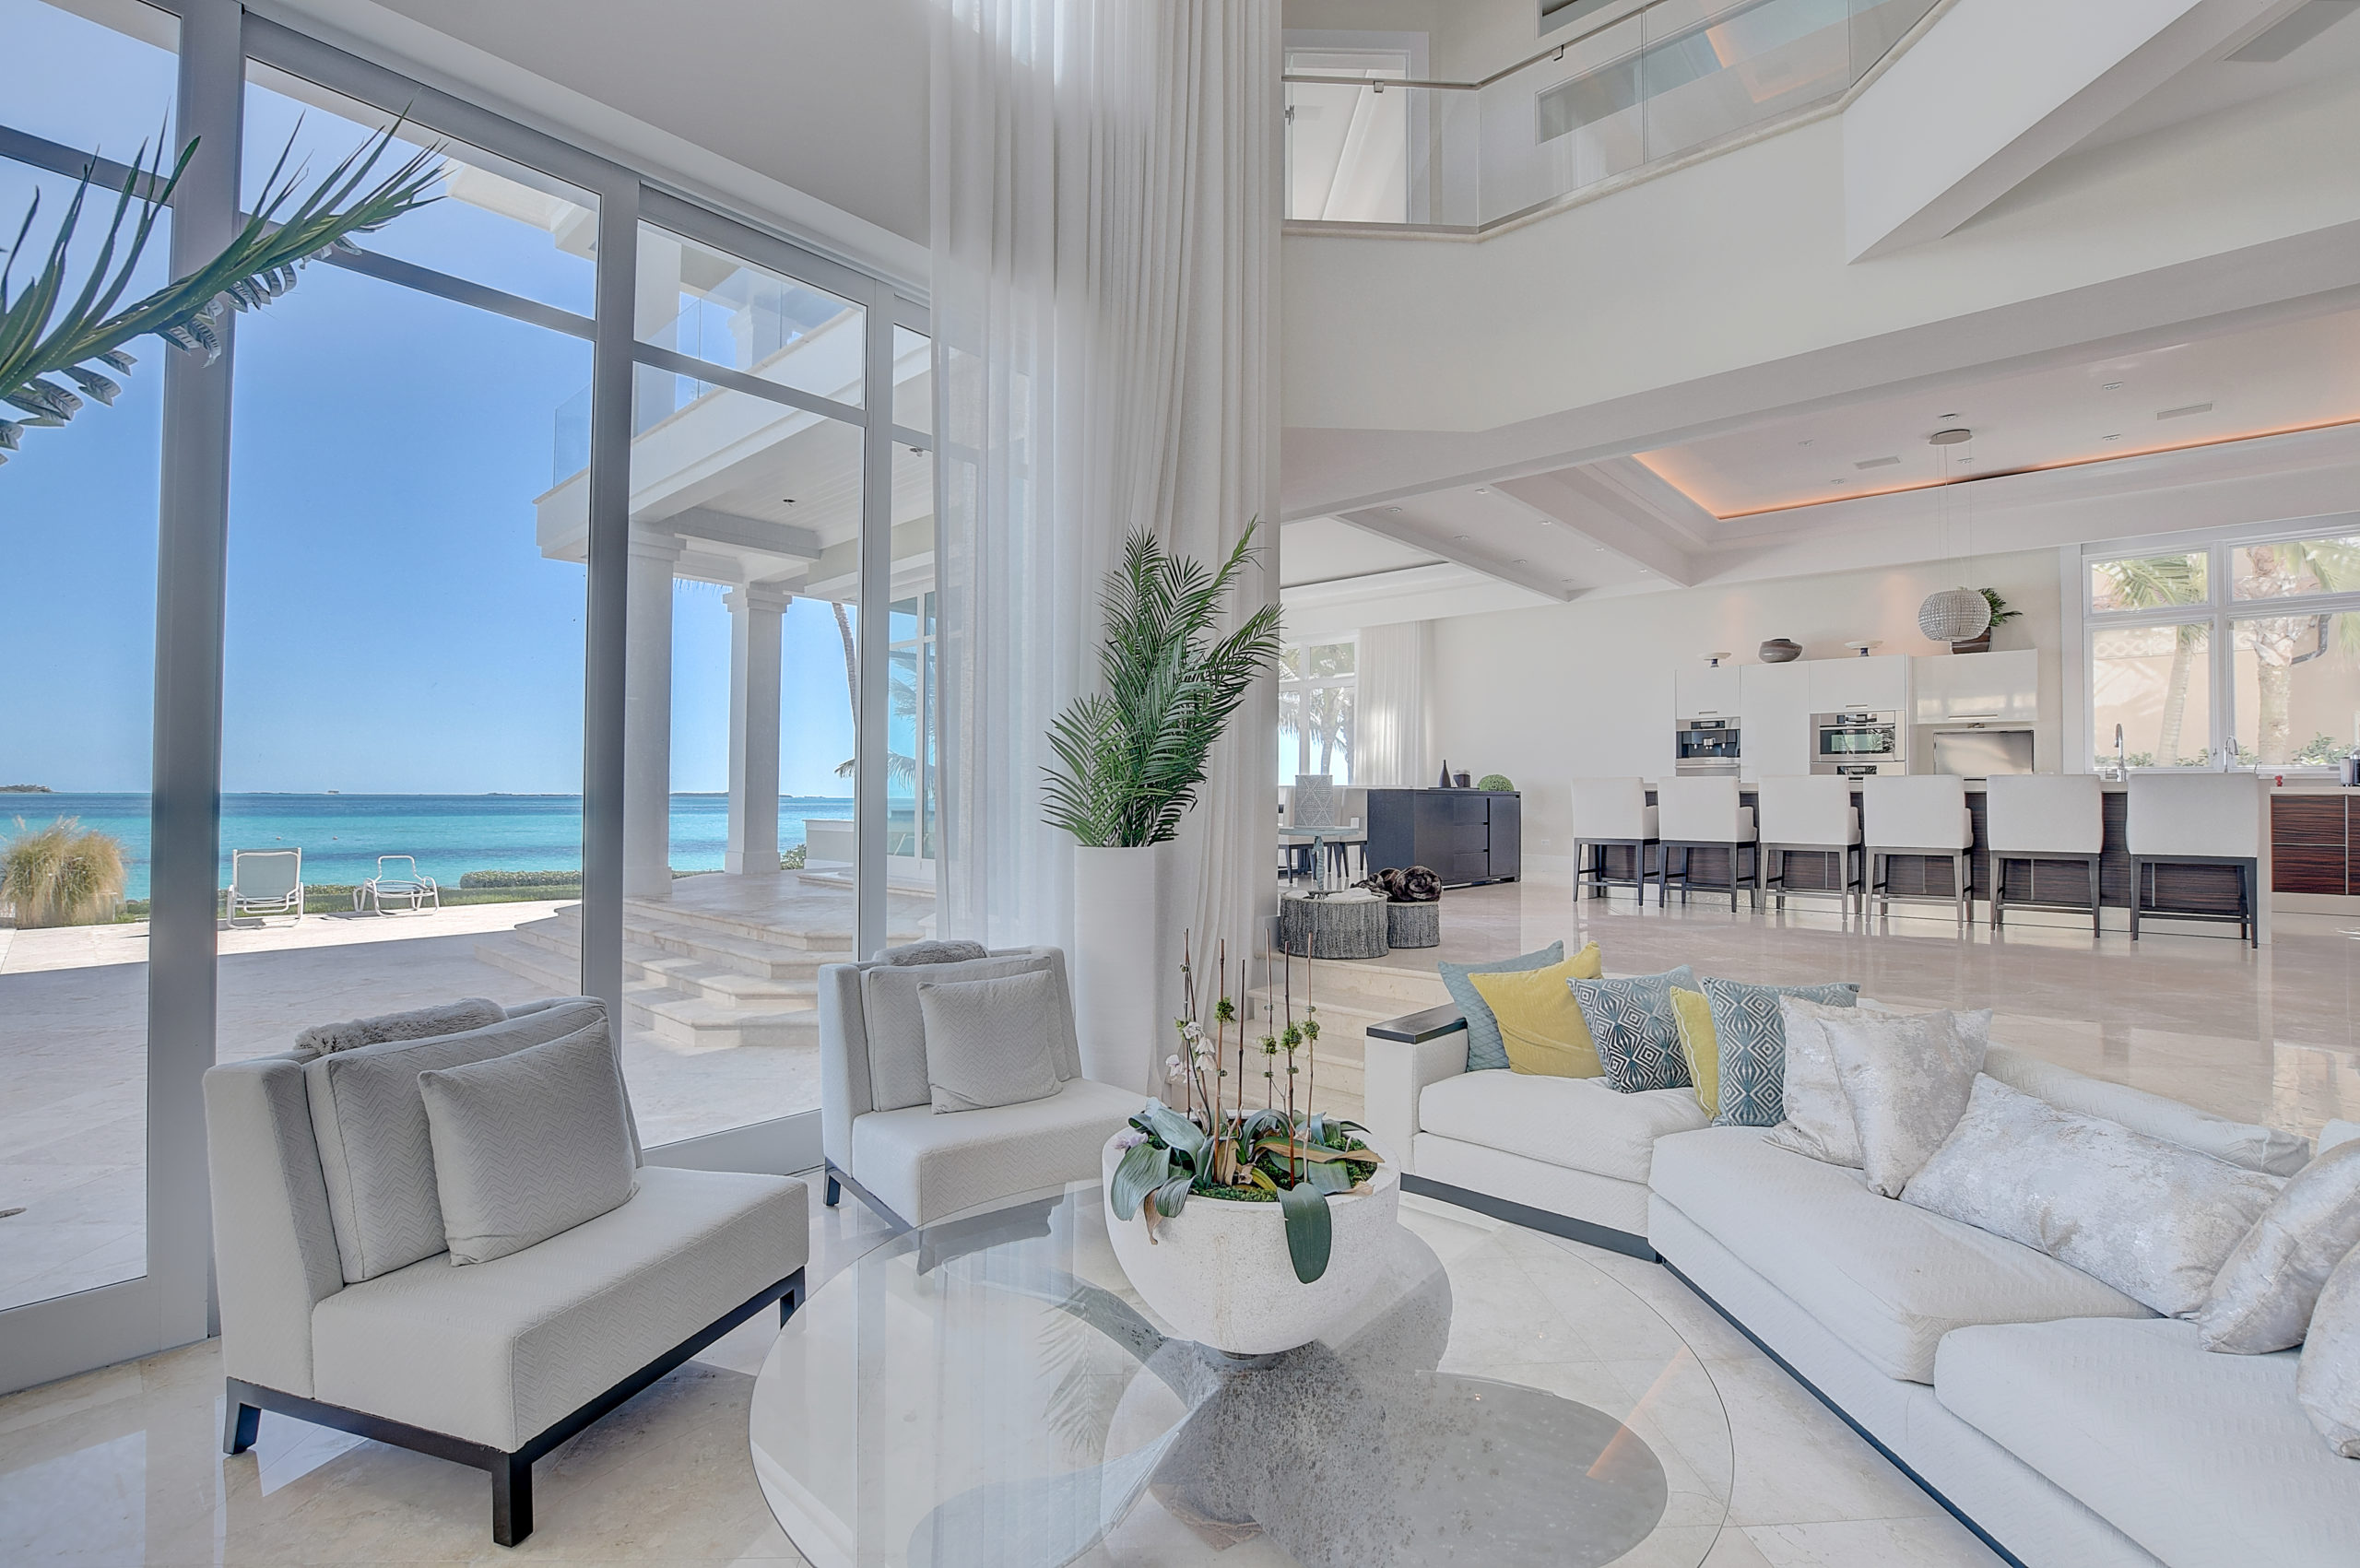 living room with views of the ocean in Bahamas